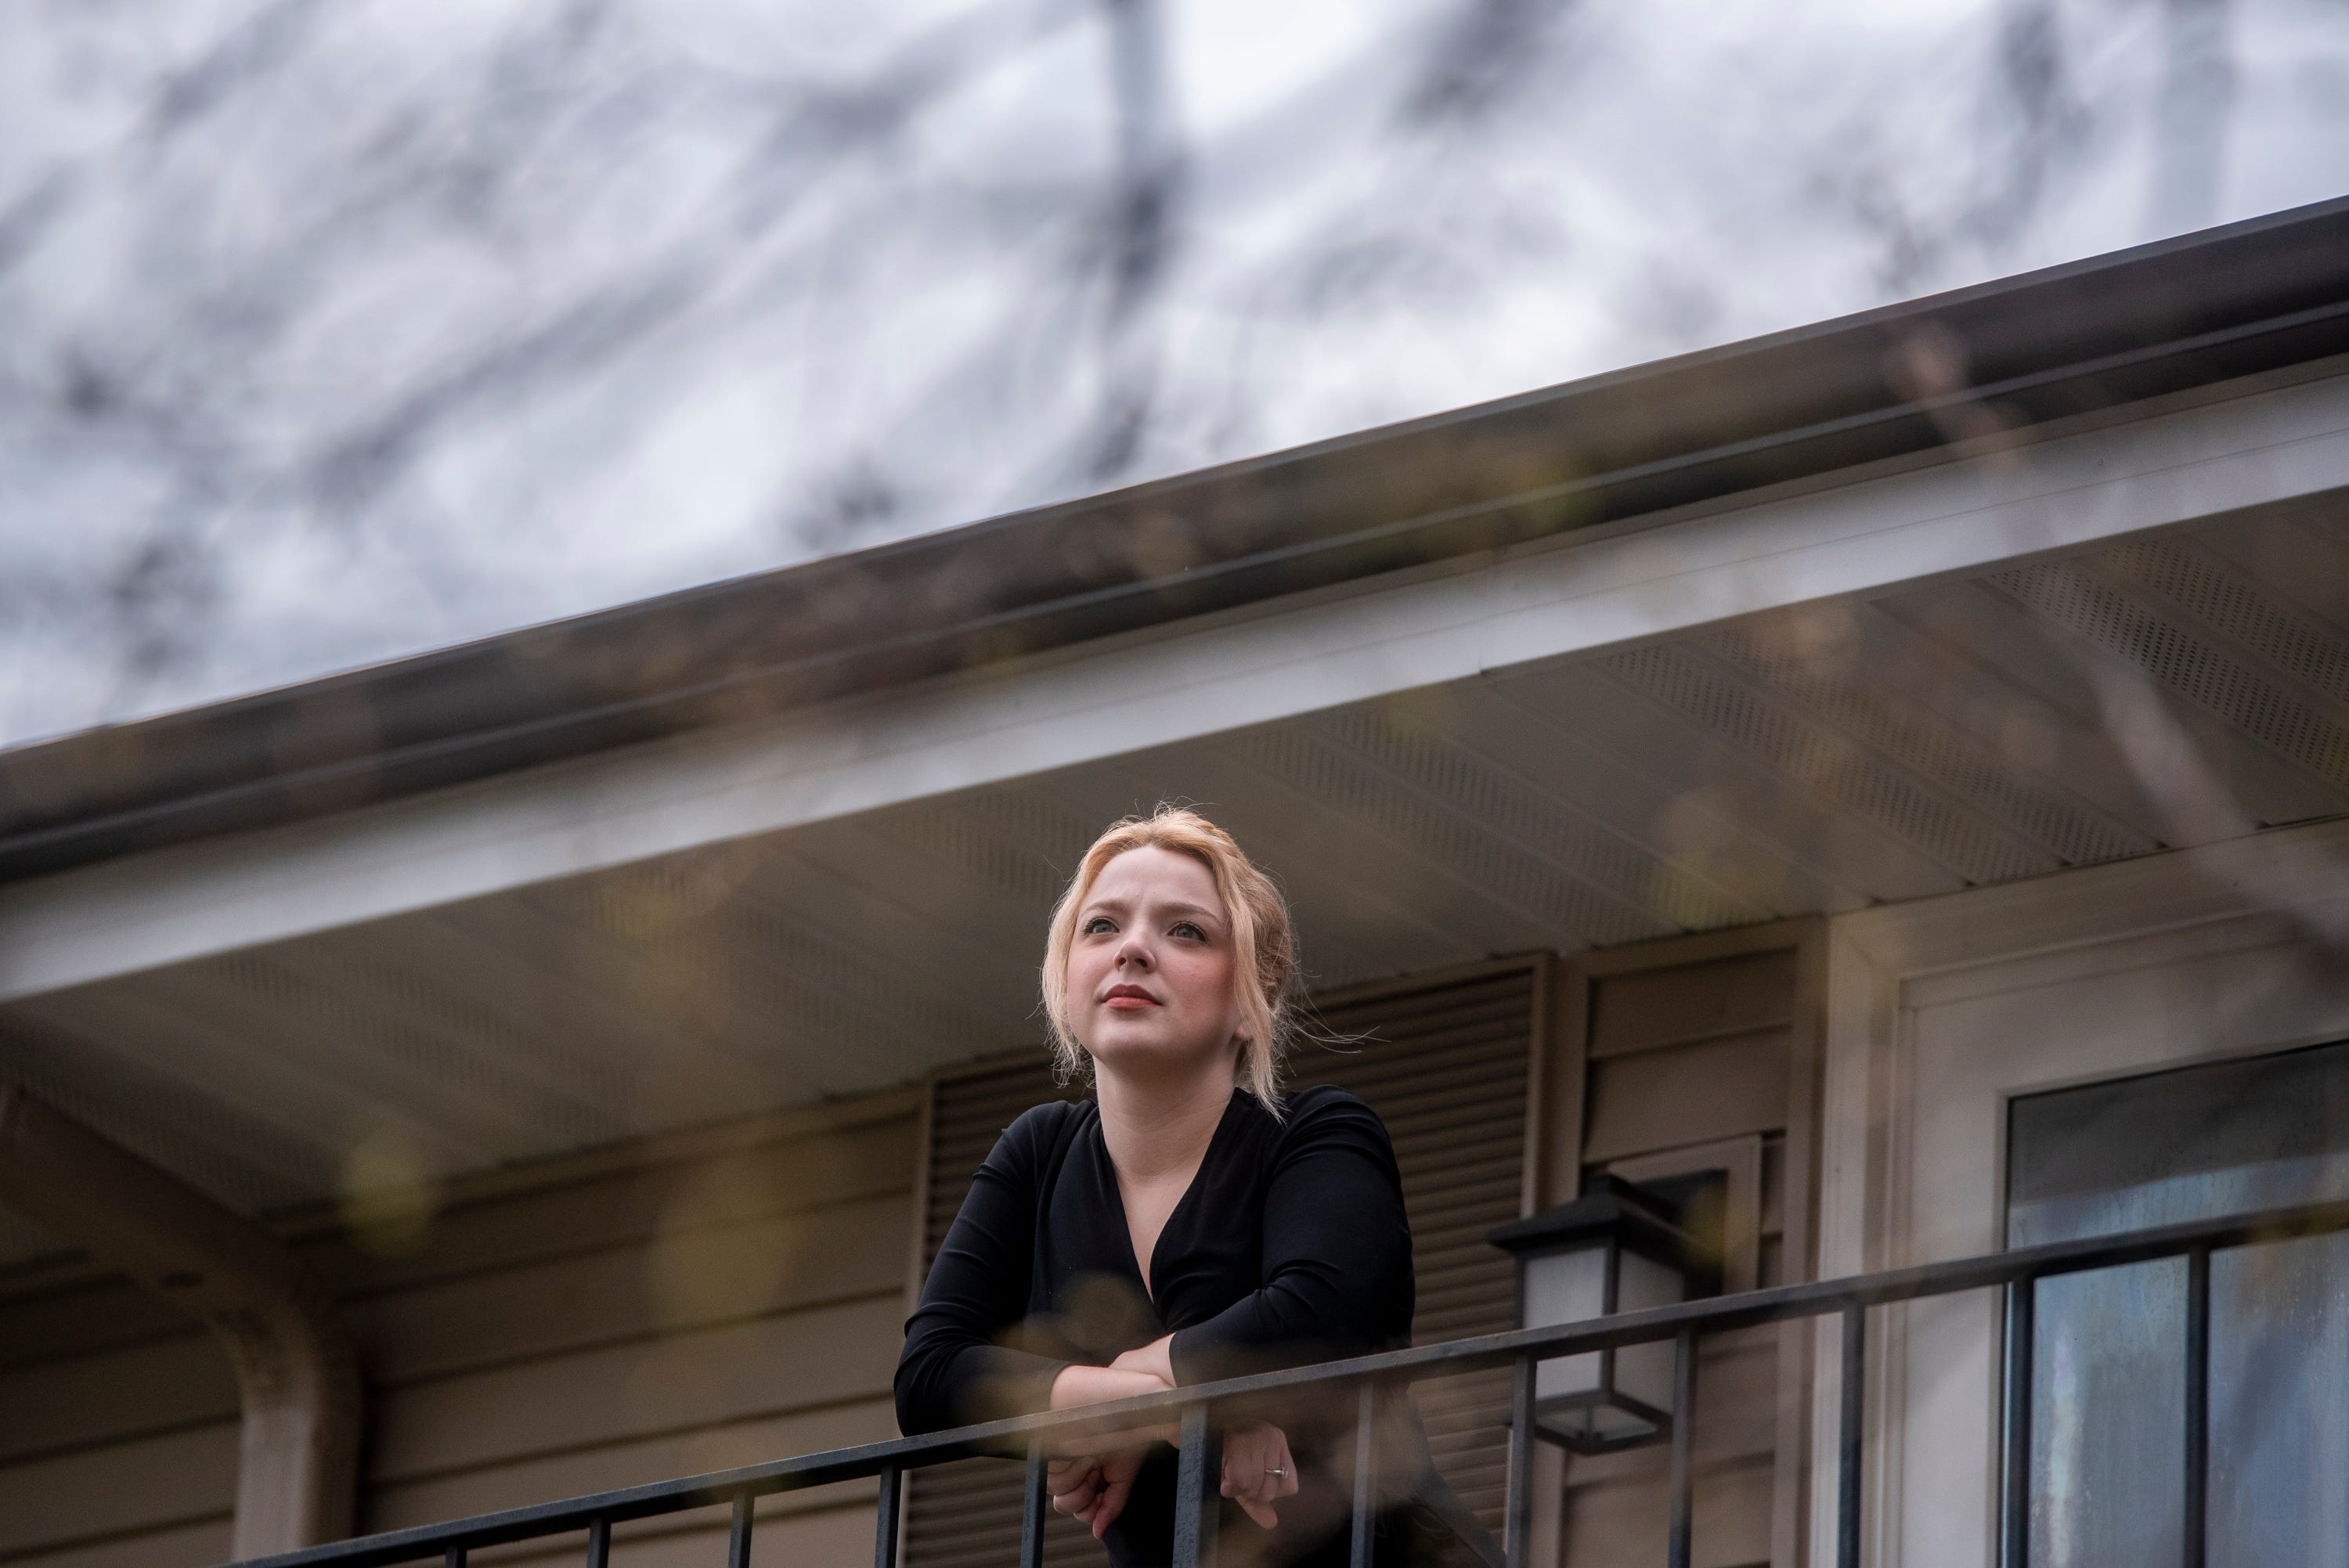 Rachel Metcalfe, 22, poses on her balcony in Naperville, Illinois, on Friday, May 1, 2020. Metcalfe went from having a full-time job and living comfortably to applying for unemployment and wondering how she was going to pay rent as she recovered from COVID-19.